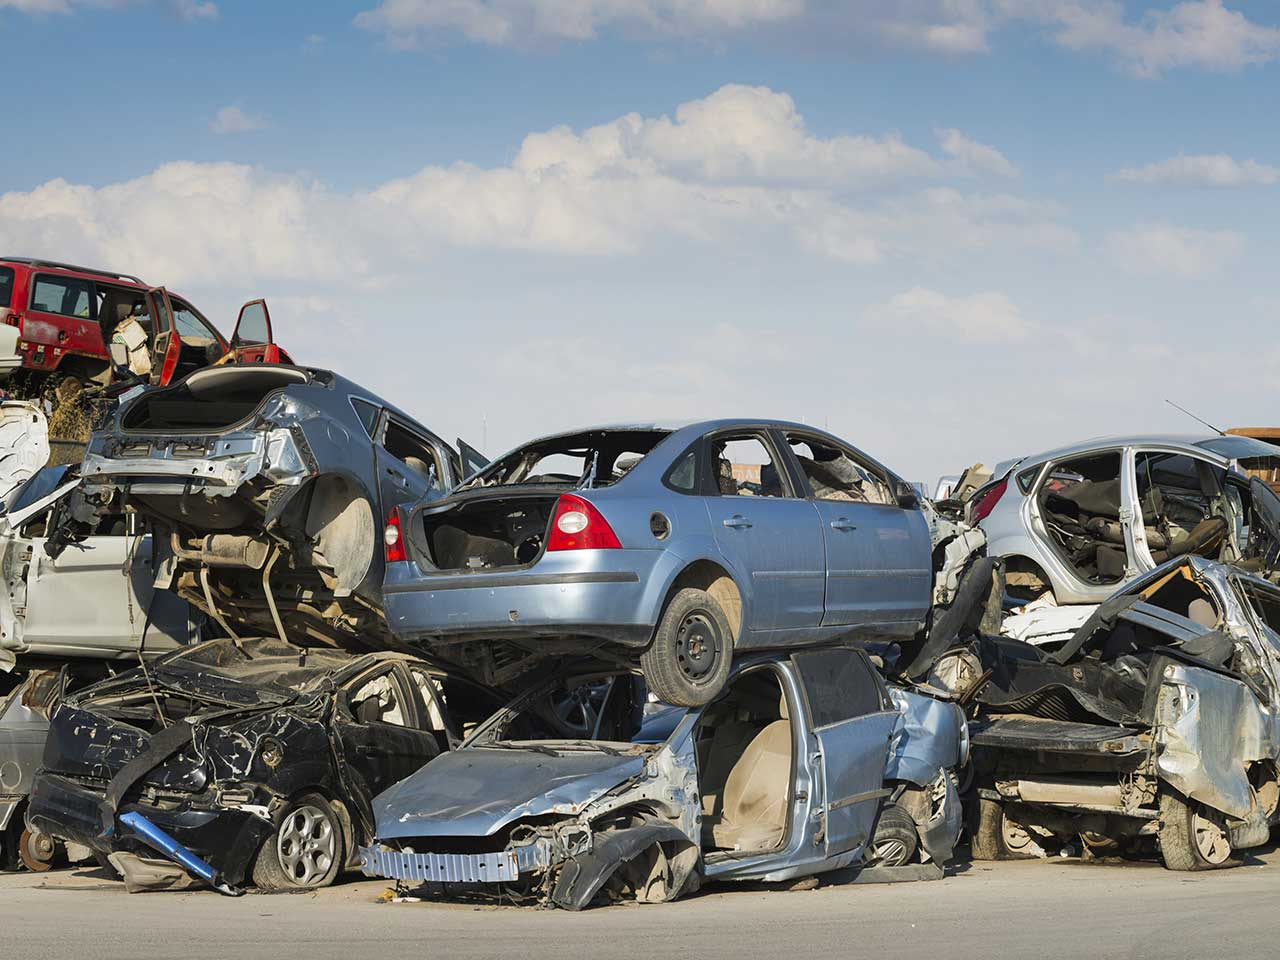 6 things to do if scrapping your car